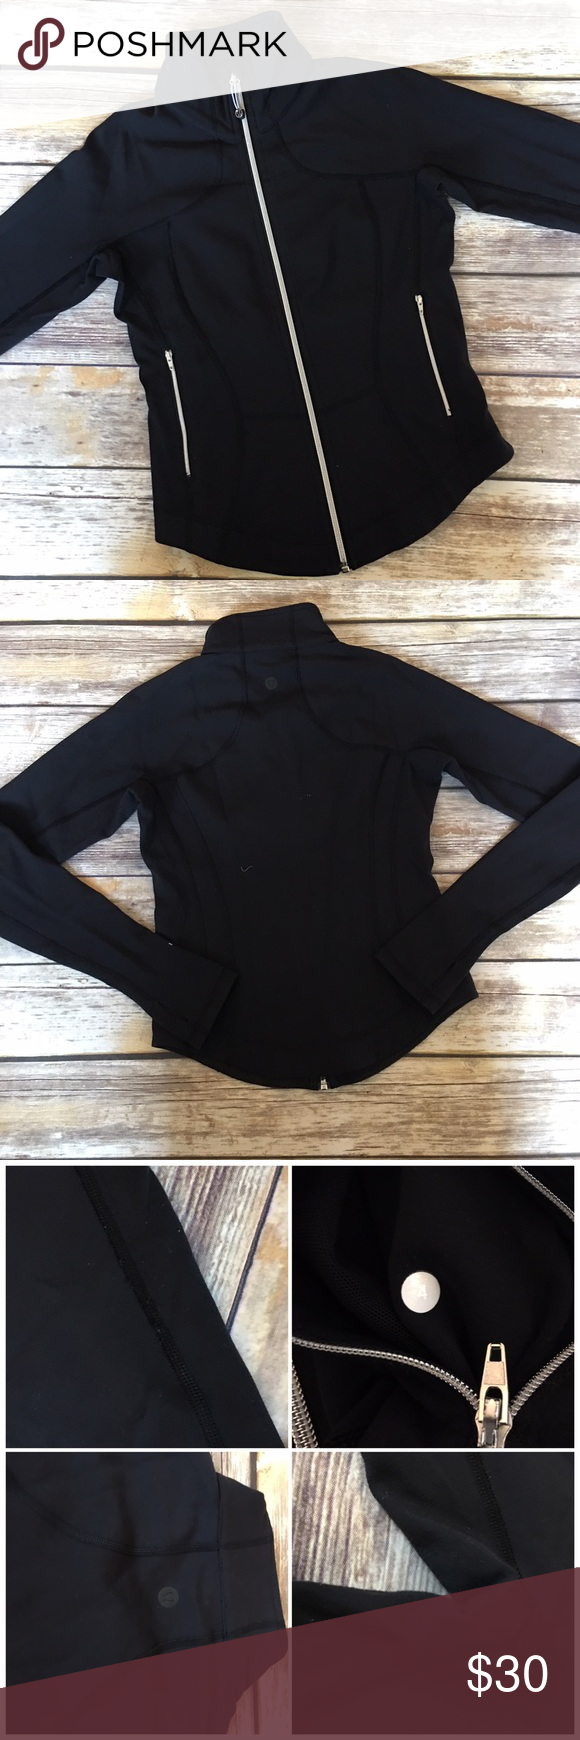 "Lululemon Black Zip up Jacket Lululemon Black Zip up Jacket. Has two pockets and zips up fully. Has thumbholes. Ideal for outdoor workouts. Has signs of pilling on the arm / wrist area and underarm. Priced accordingly. Measures from pit to pit 17""/ length 21"". lululemon athletica Jackets & Coats"